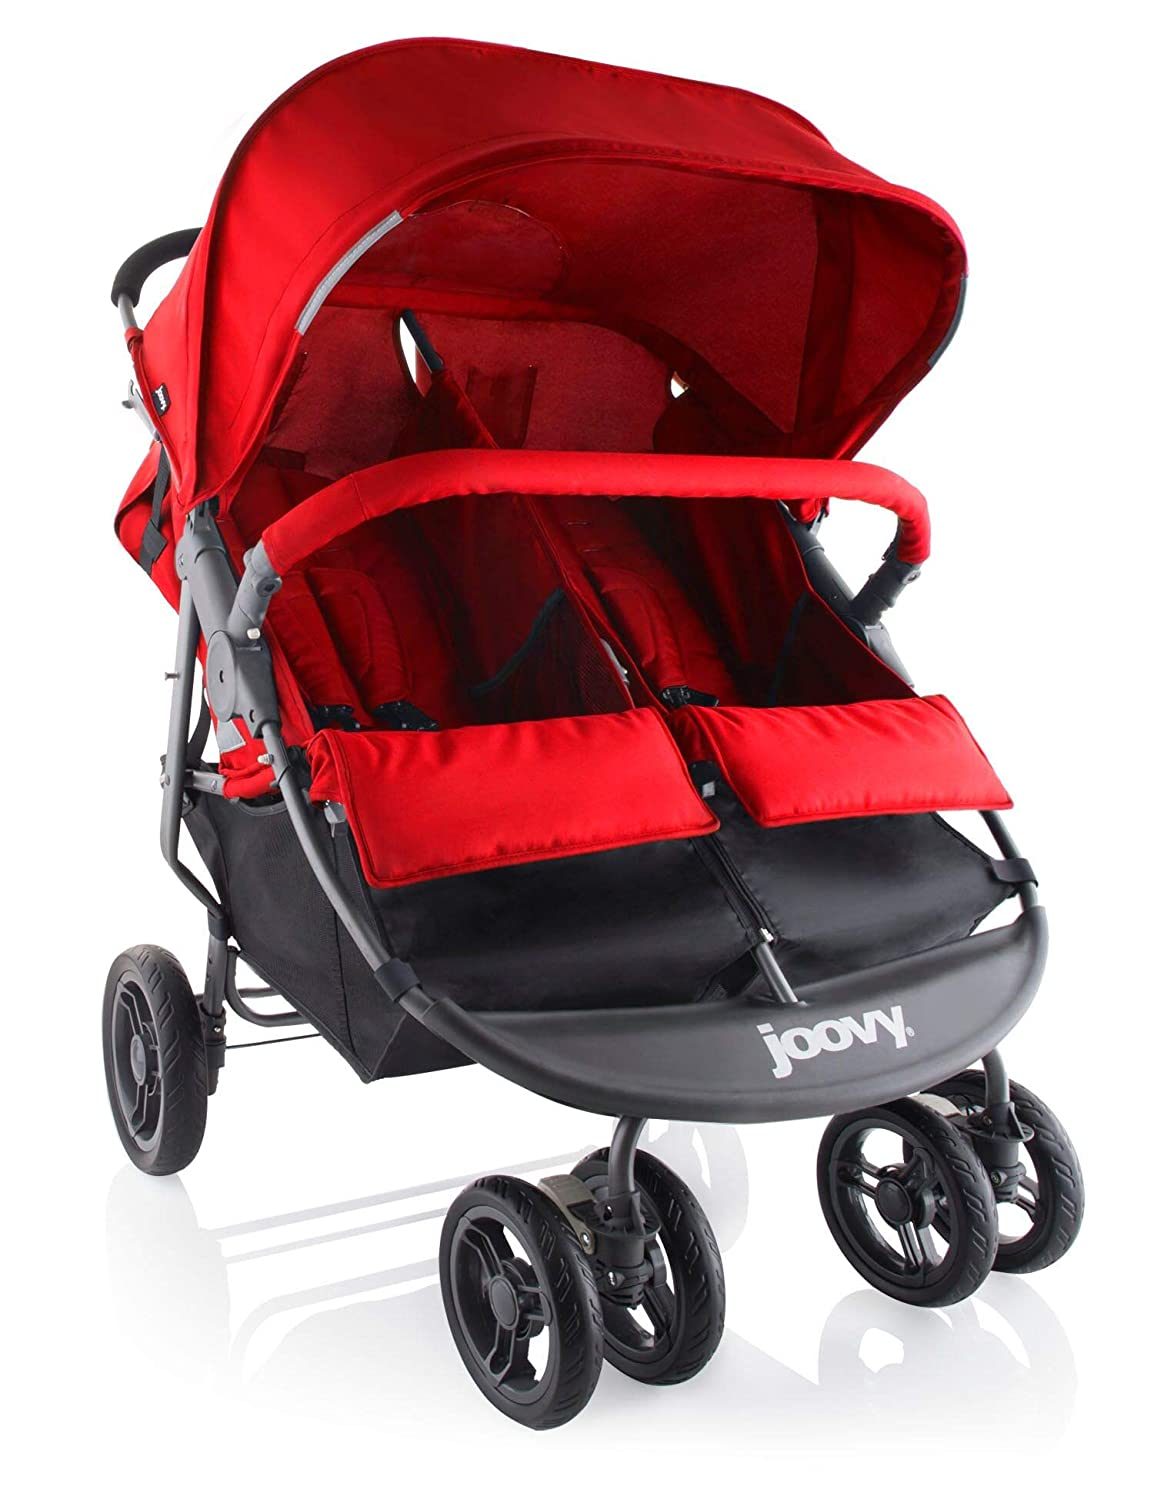 Joovy Scooter X2 Double Stroller Strolle Limited price sale by Side Cheap mail order specialty store